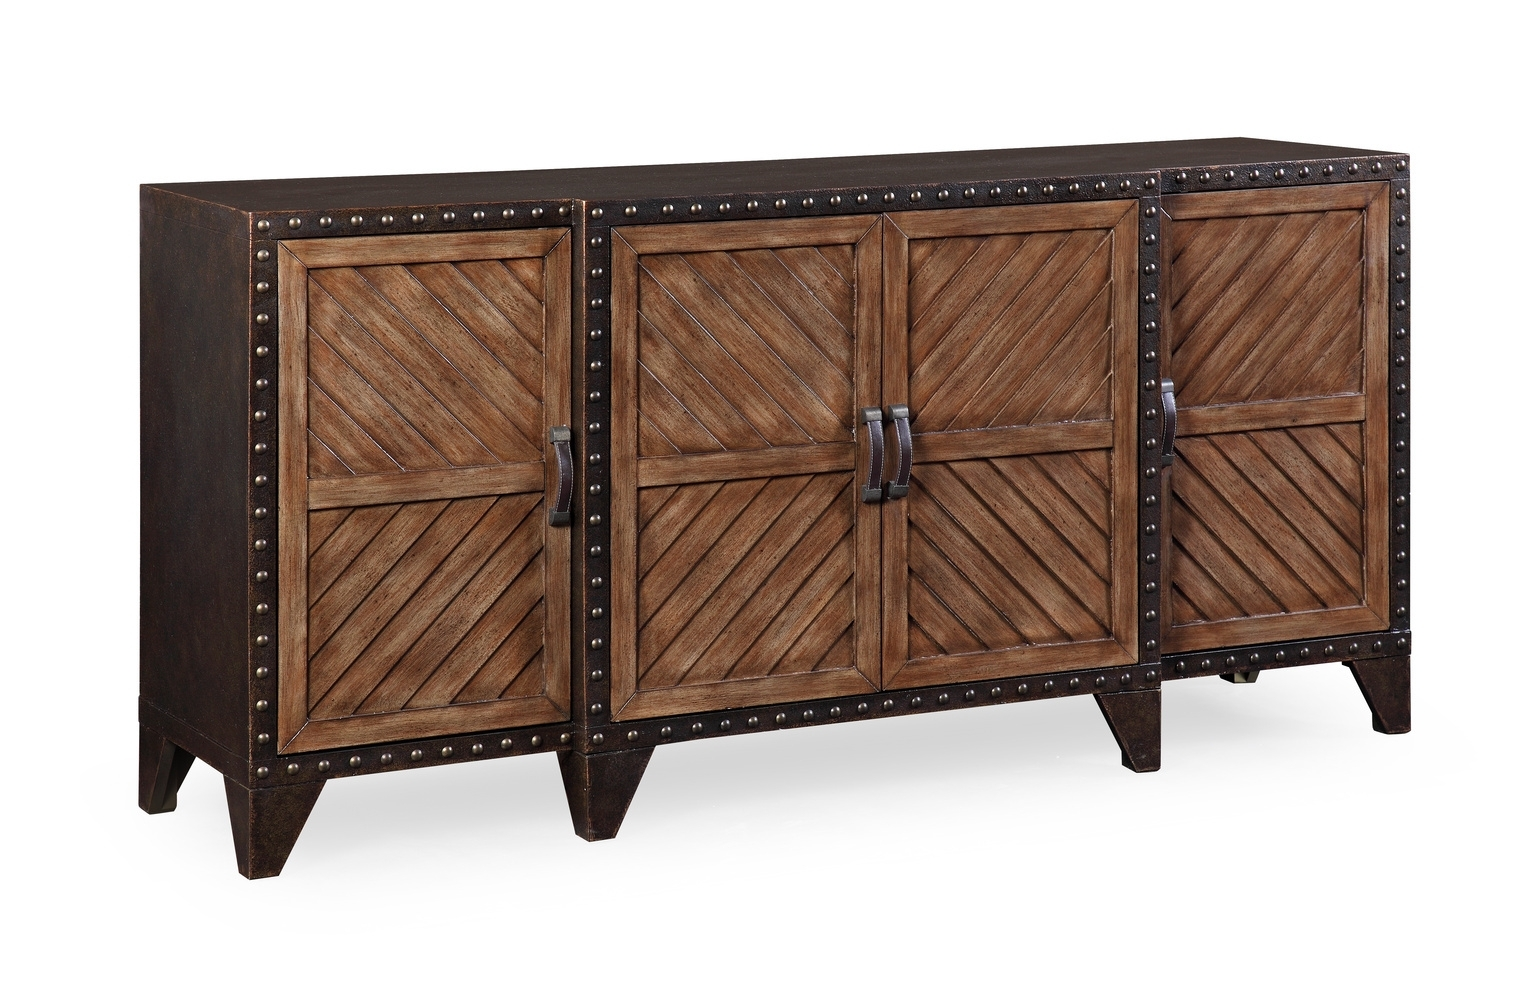 Sideboards, Cabinets, Shelving In Current Rustic Black & Zebra Pine Sideboards (View 7 of 20)